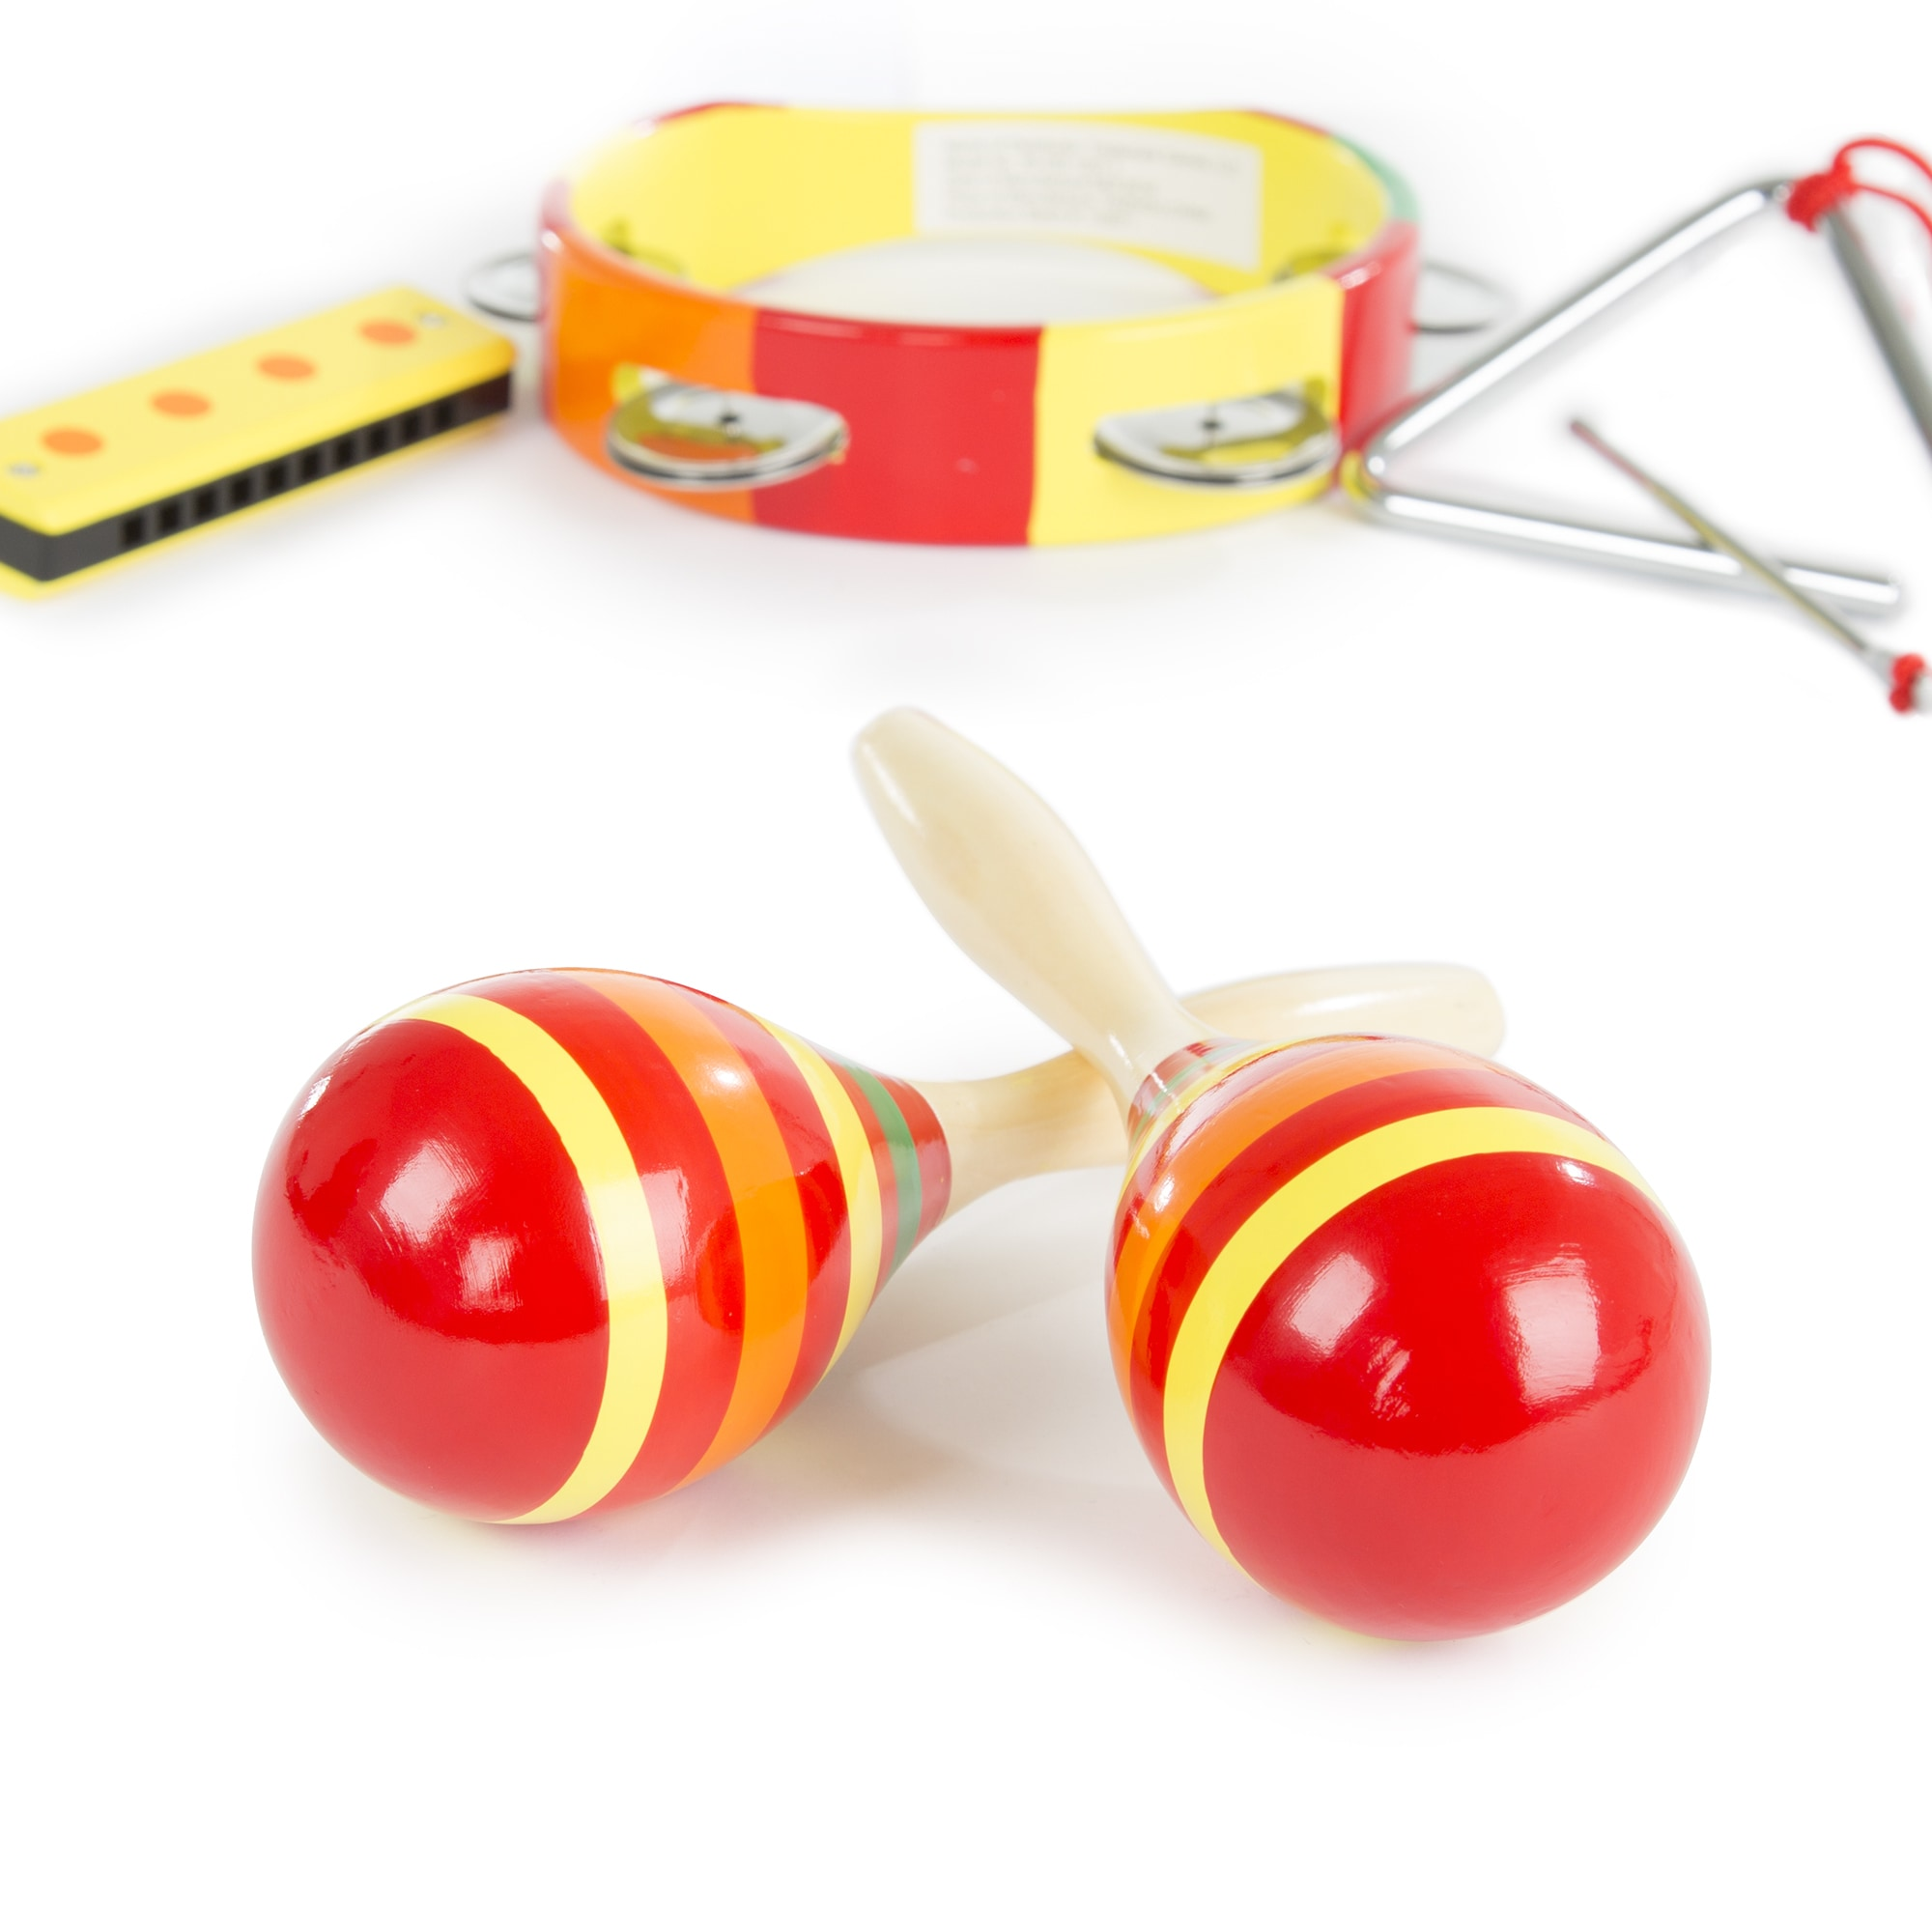 Shop Hey Play Kids Percussion Musical Instruments Toy Set Free